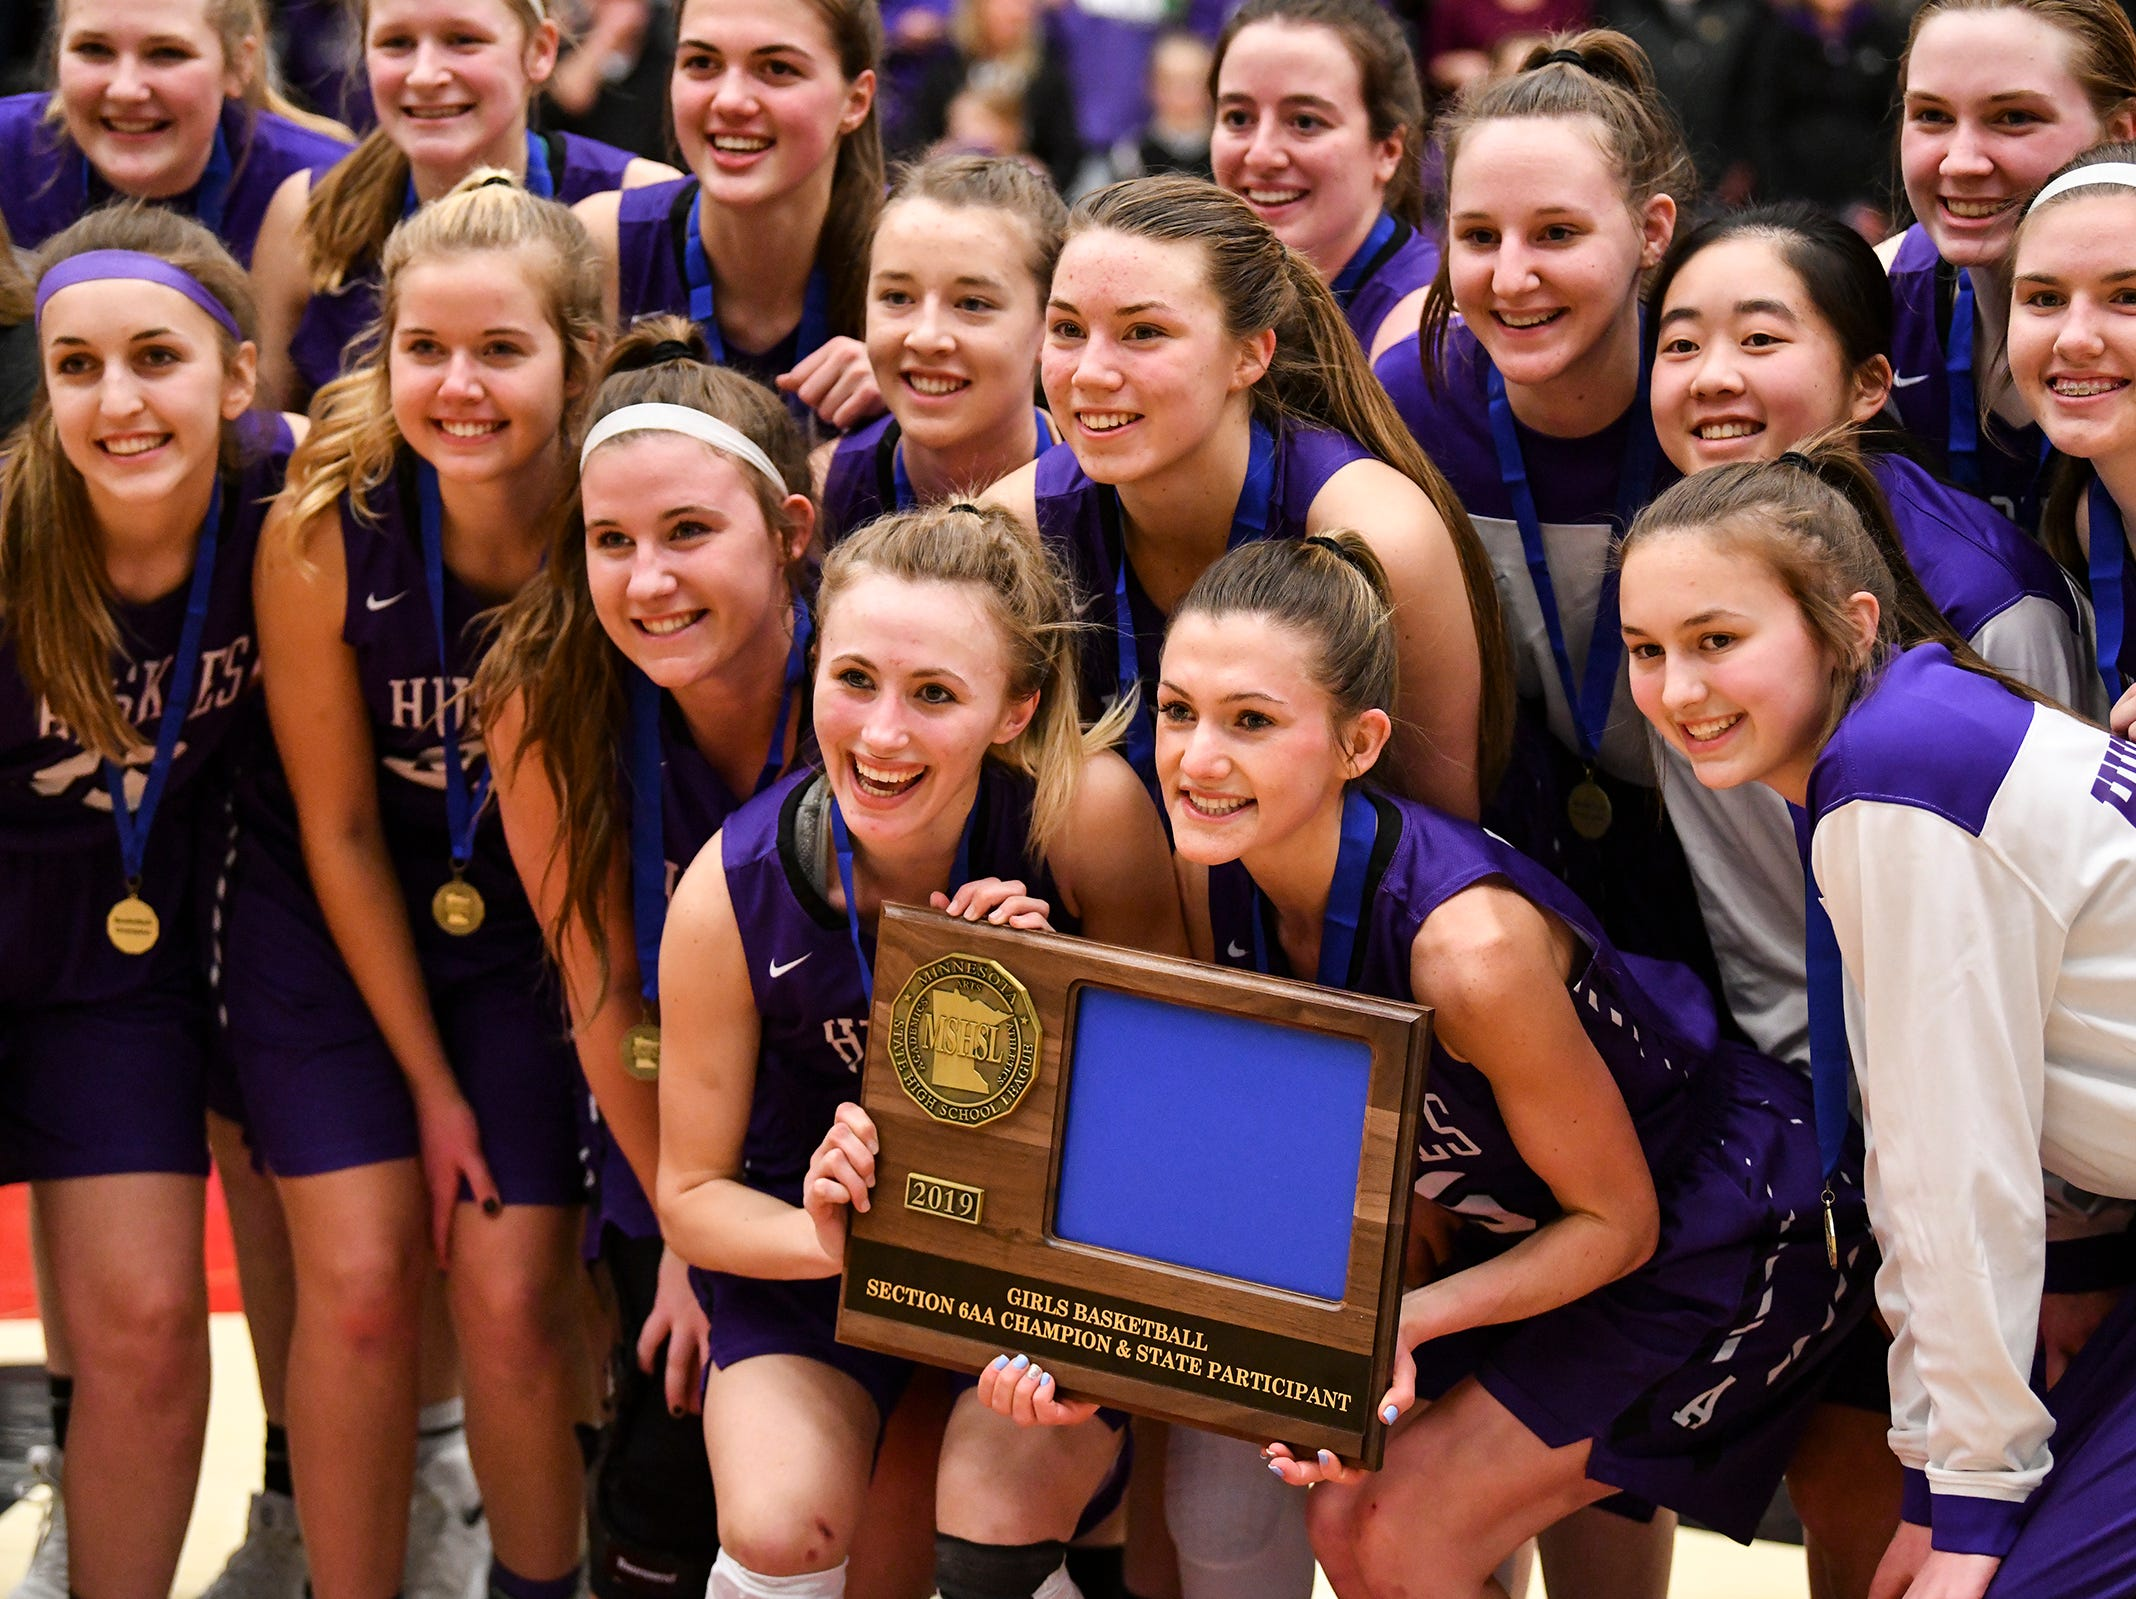 Albany players pose with their section trophy following the Section 6-2A championship game against Pine City Friday, March 8, at Halenbeck Hall in St. Cloud. Albany won 60-29.